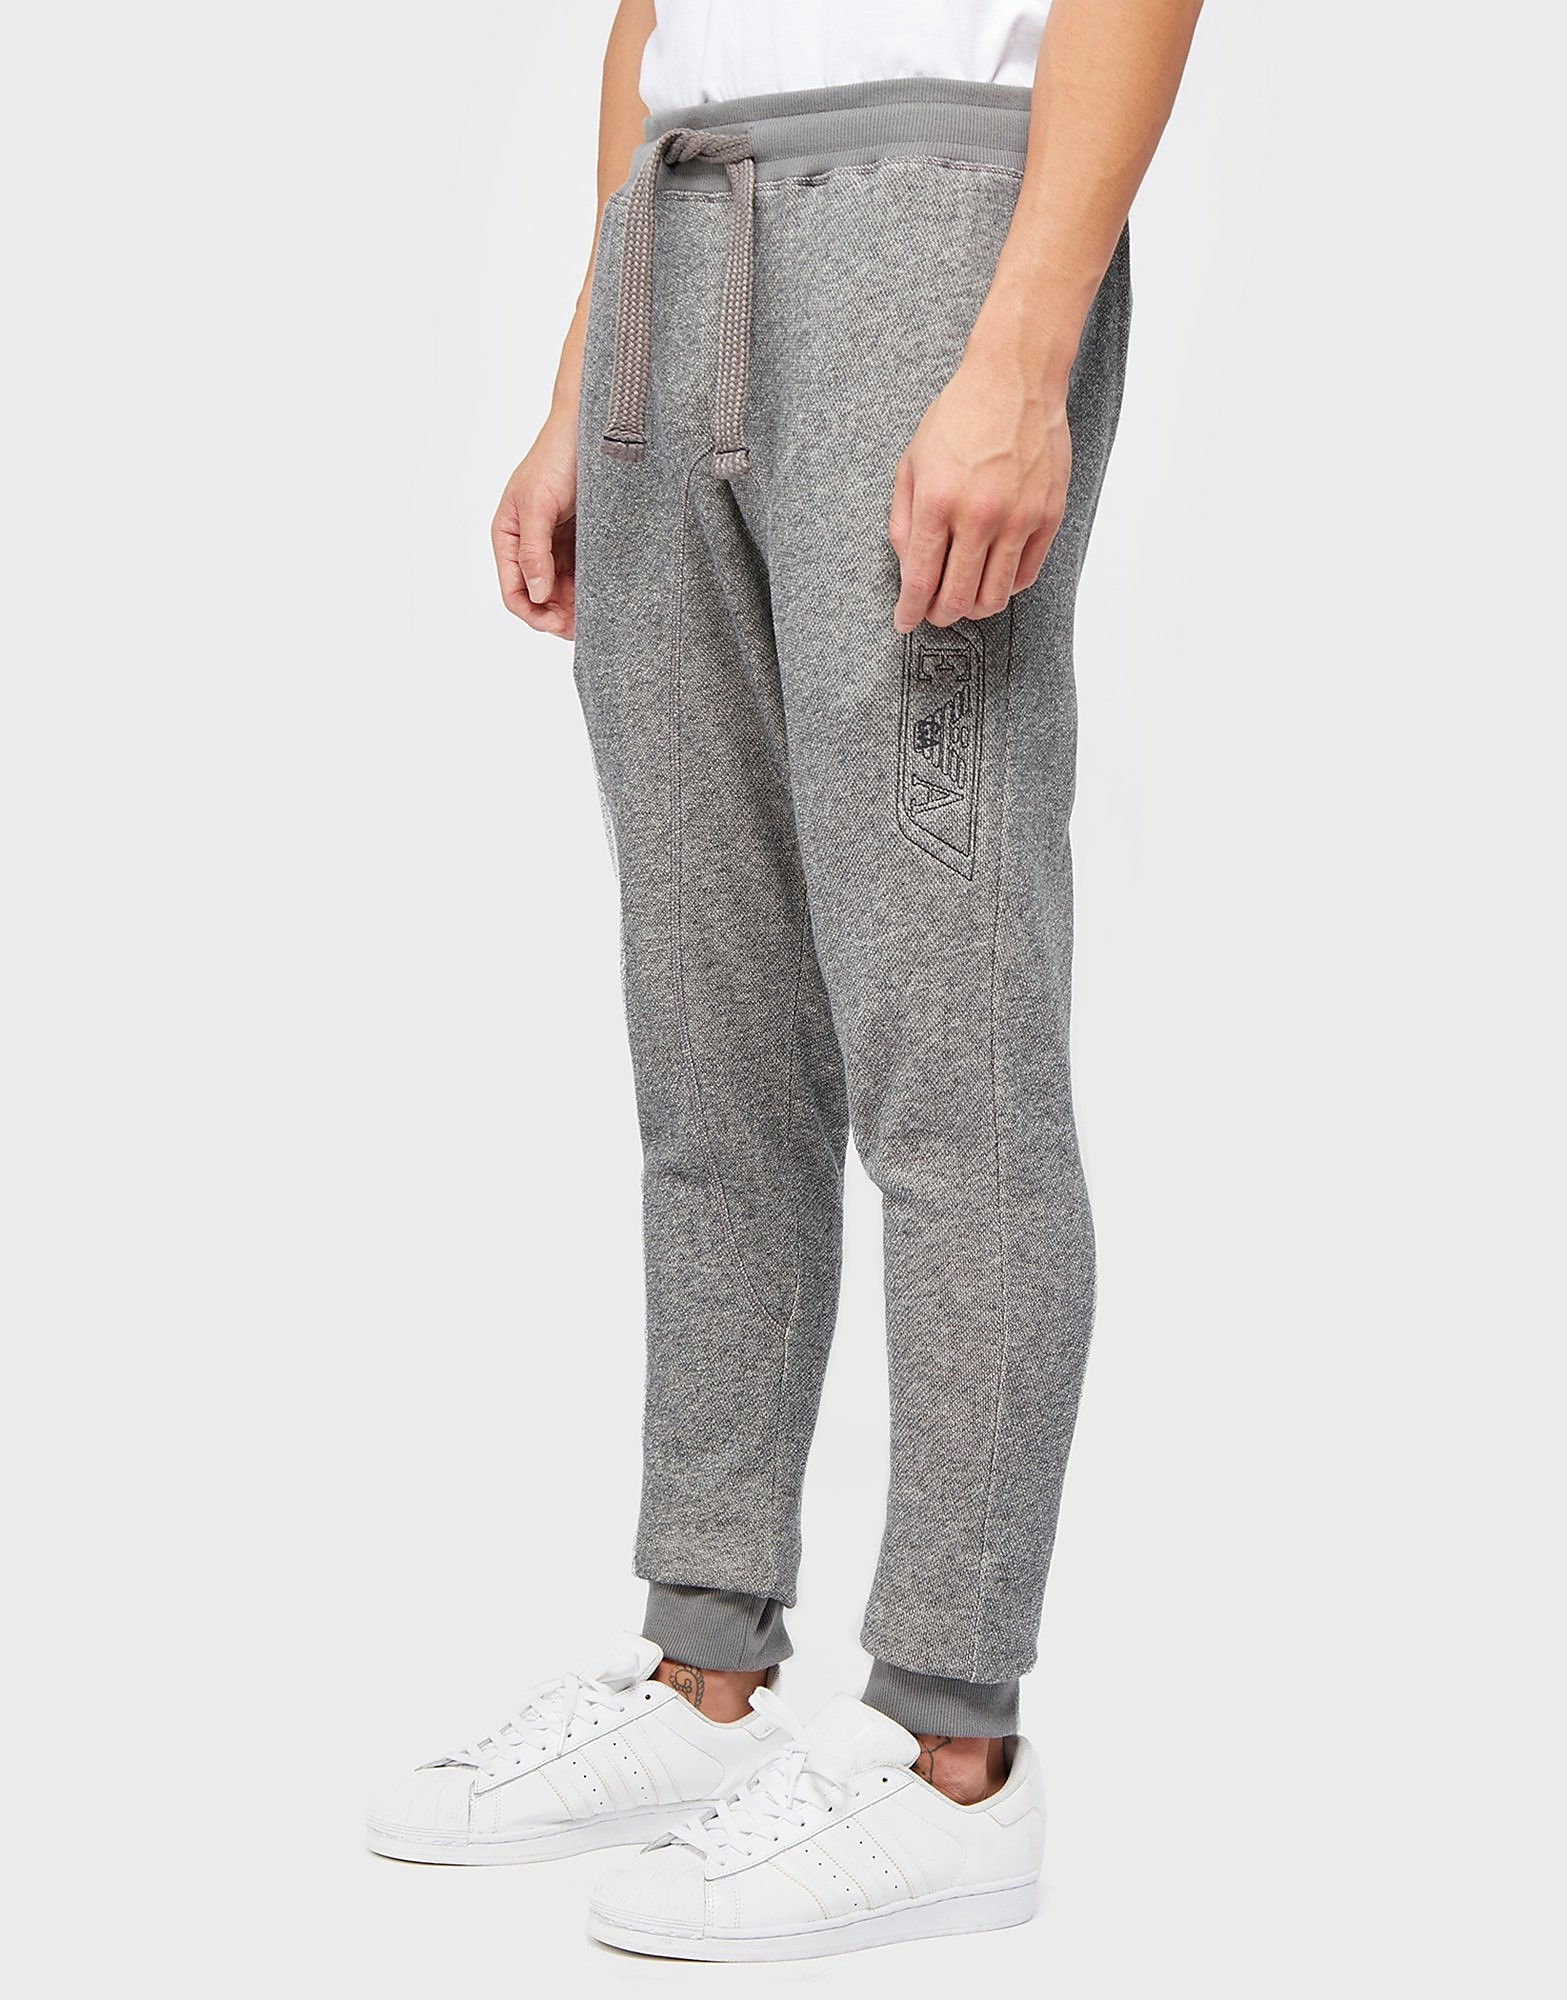 Emporio Armani Fleece Pants